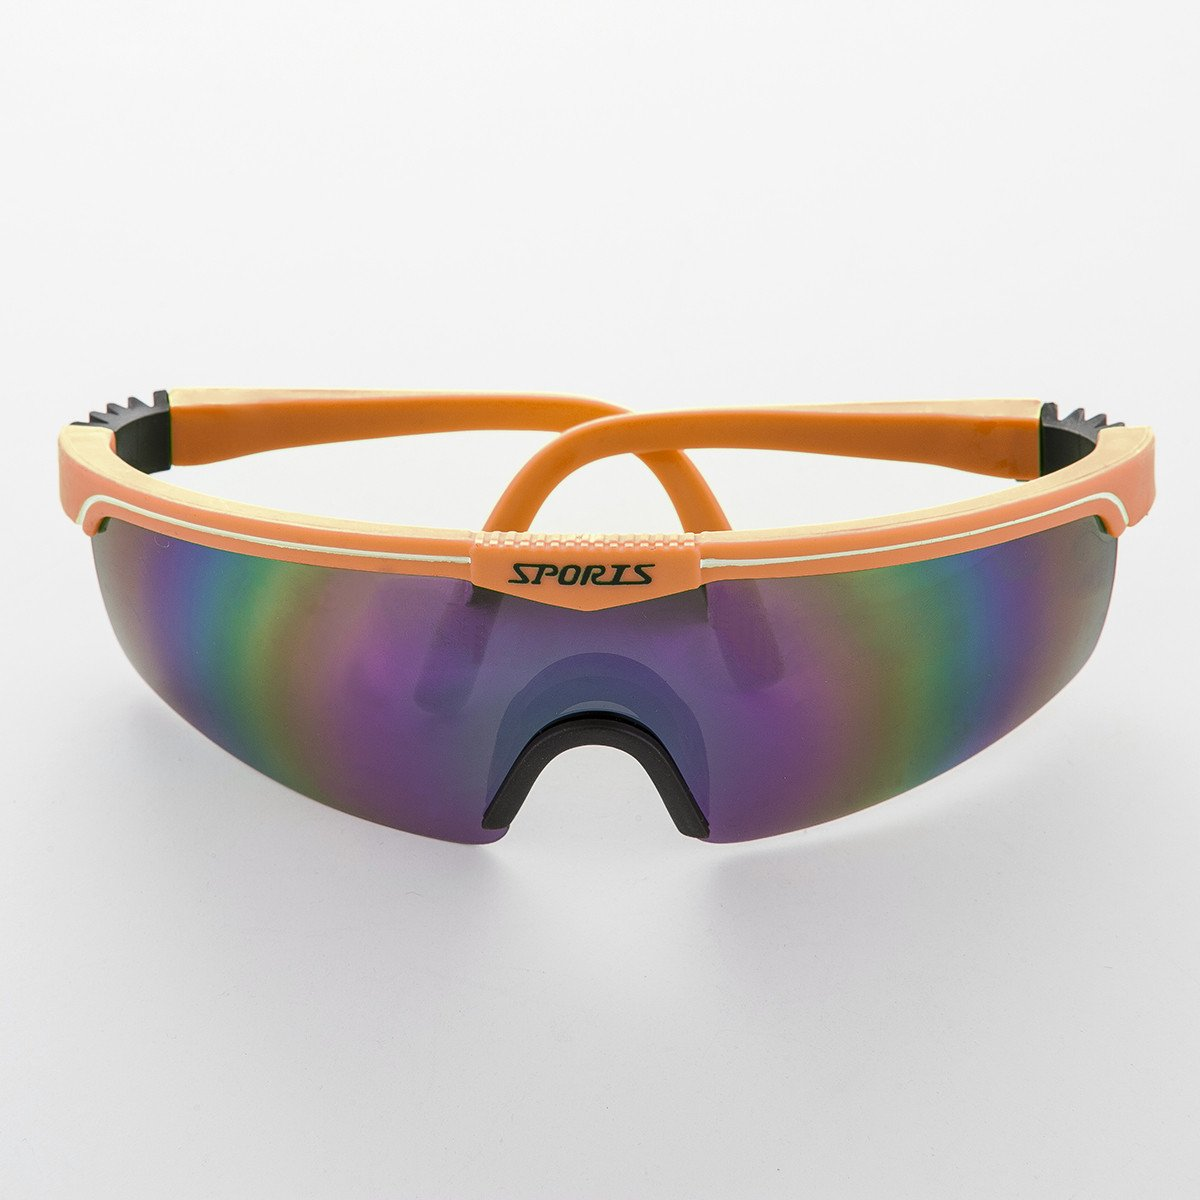 7224b7438766d 90s Sports Reflective Mirror Shield Lens Vintage Sunglass - Cosmo ...